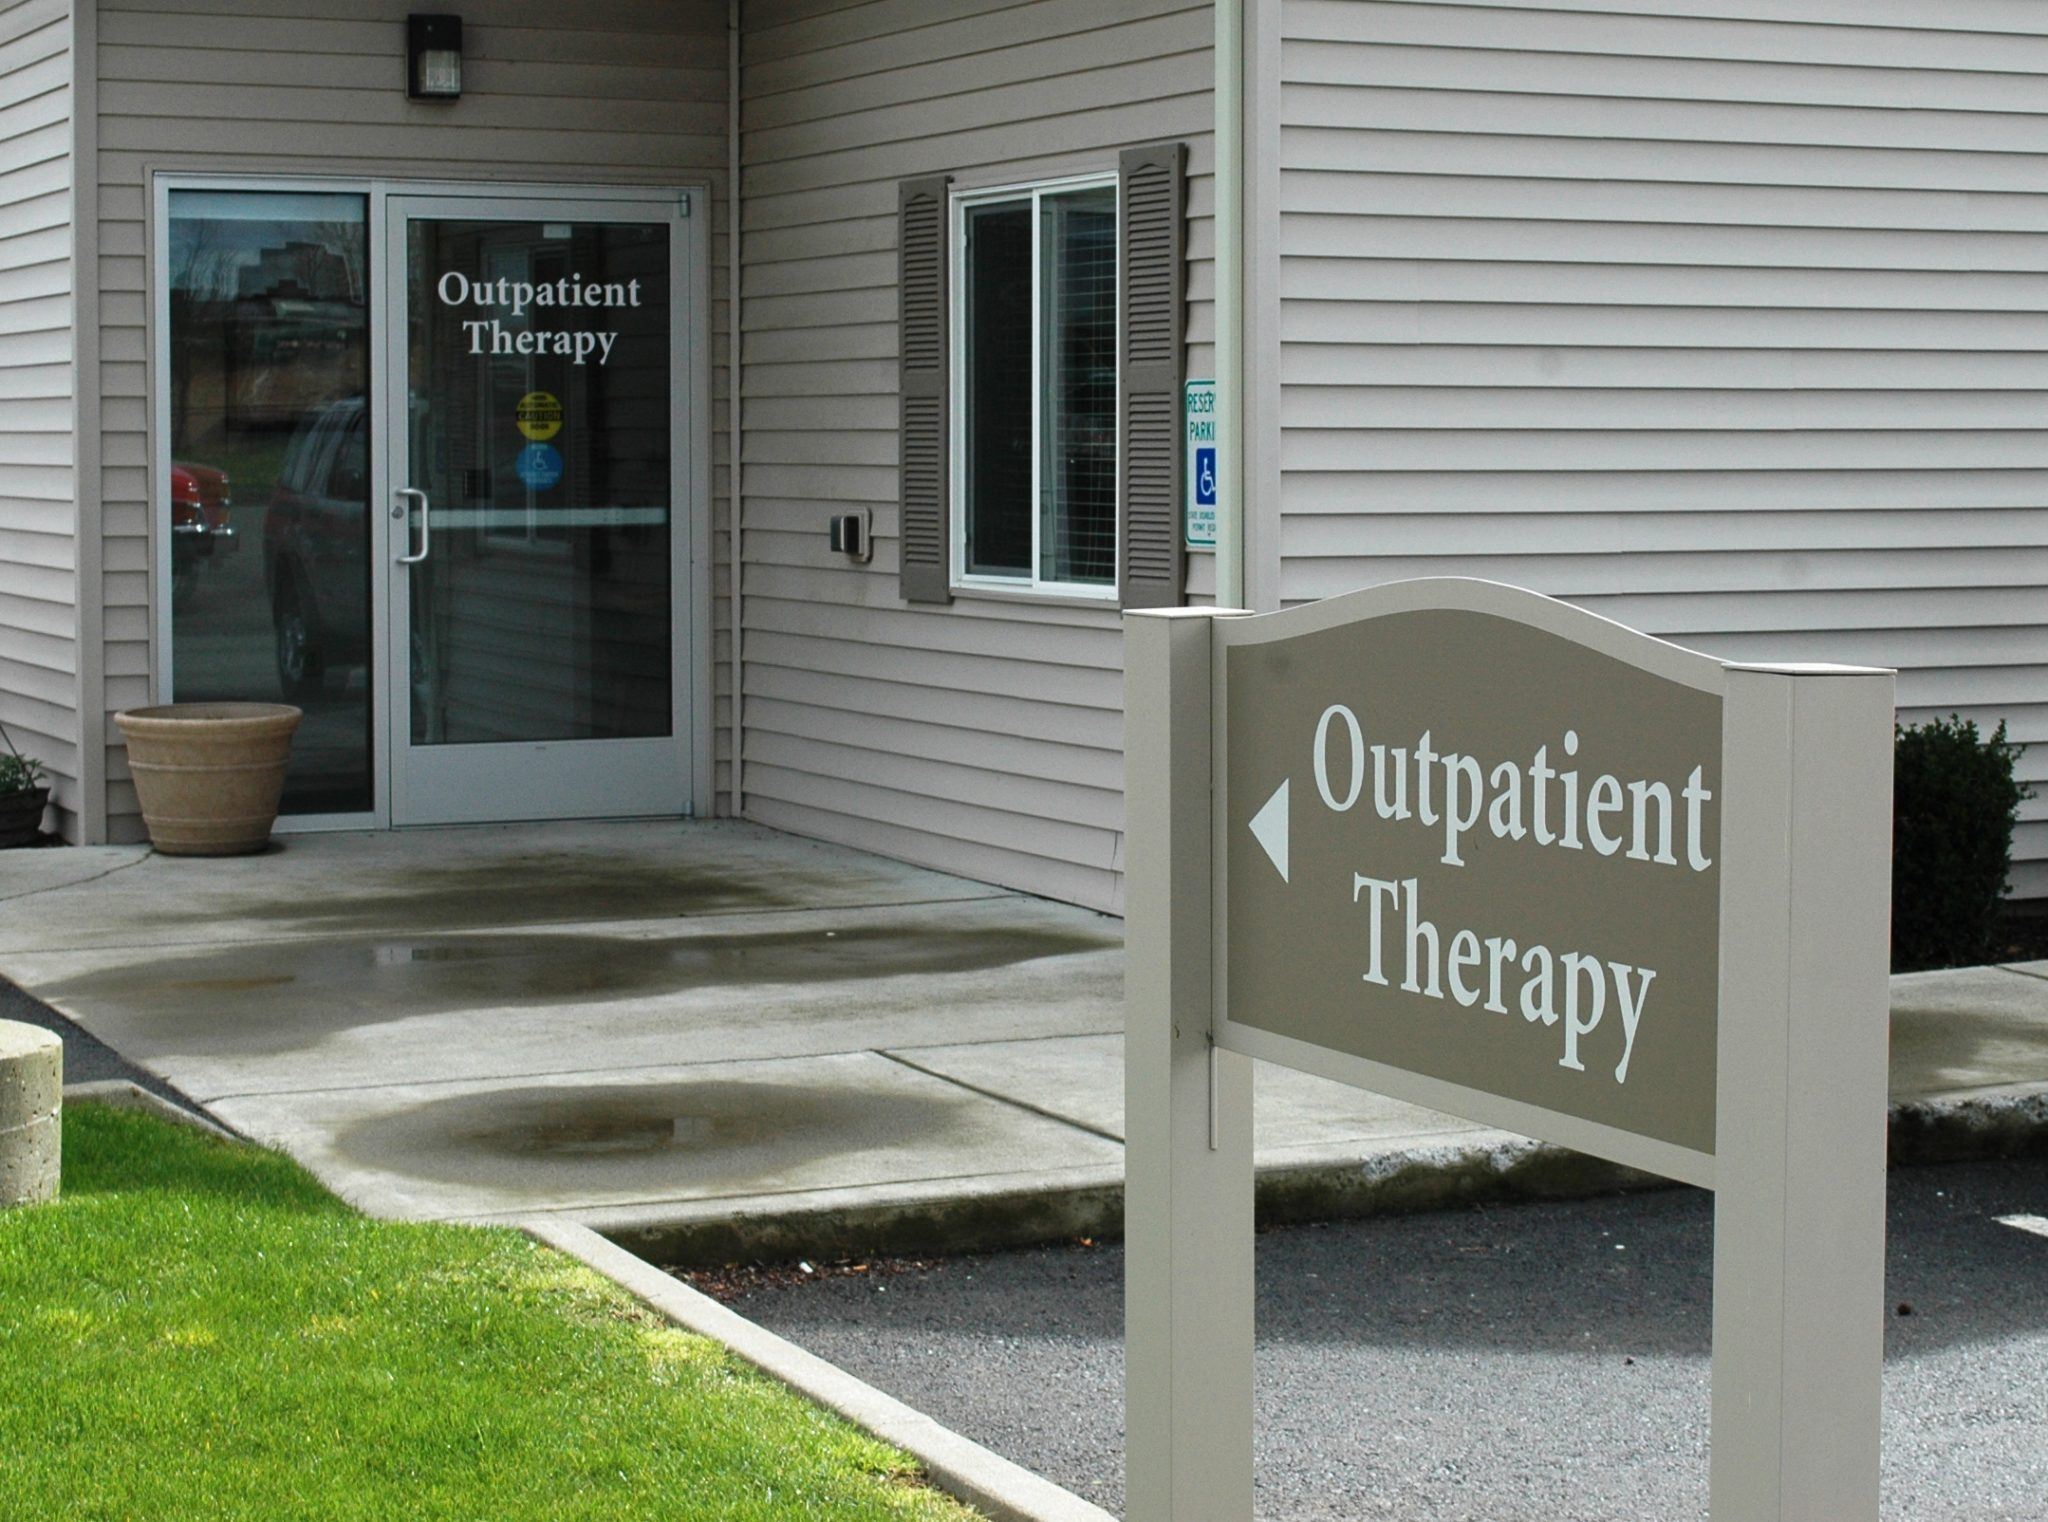 Entrance to Outpatient Therapy